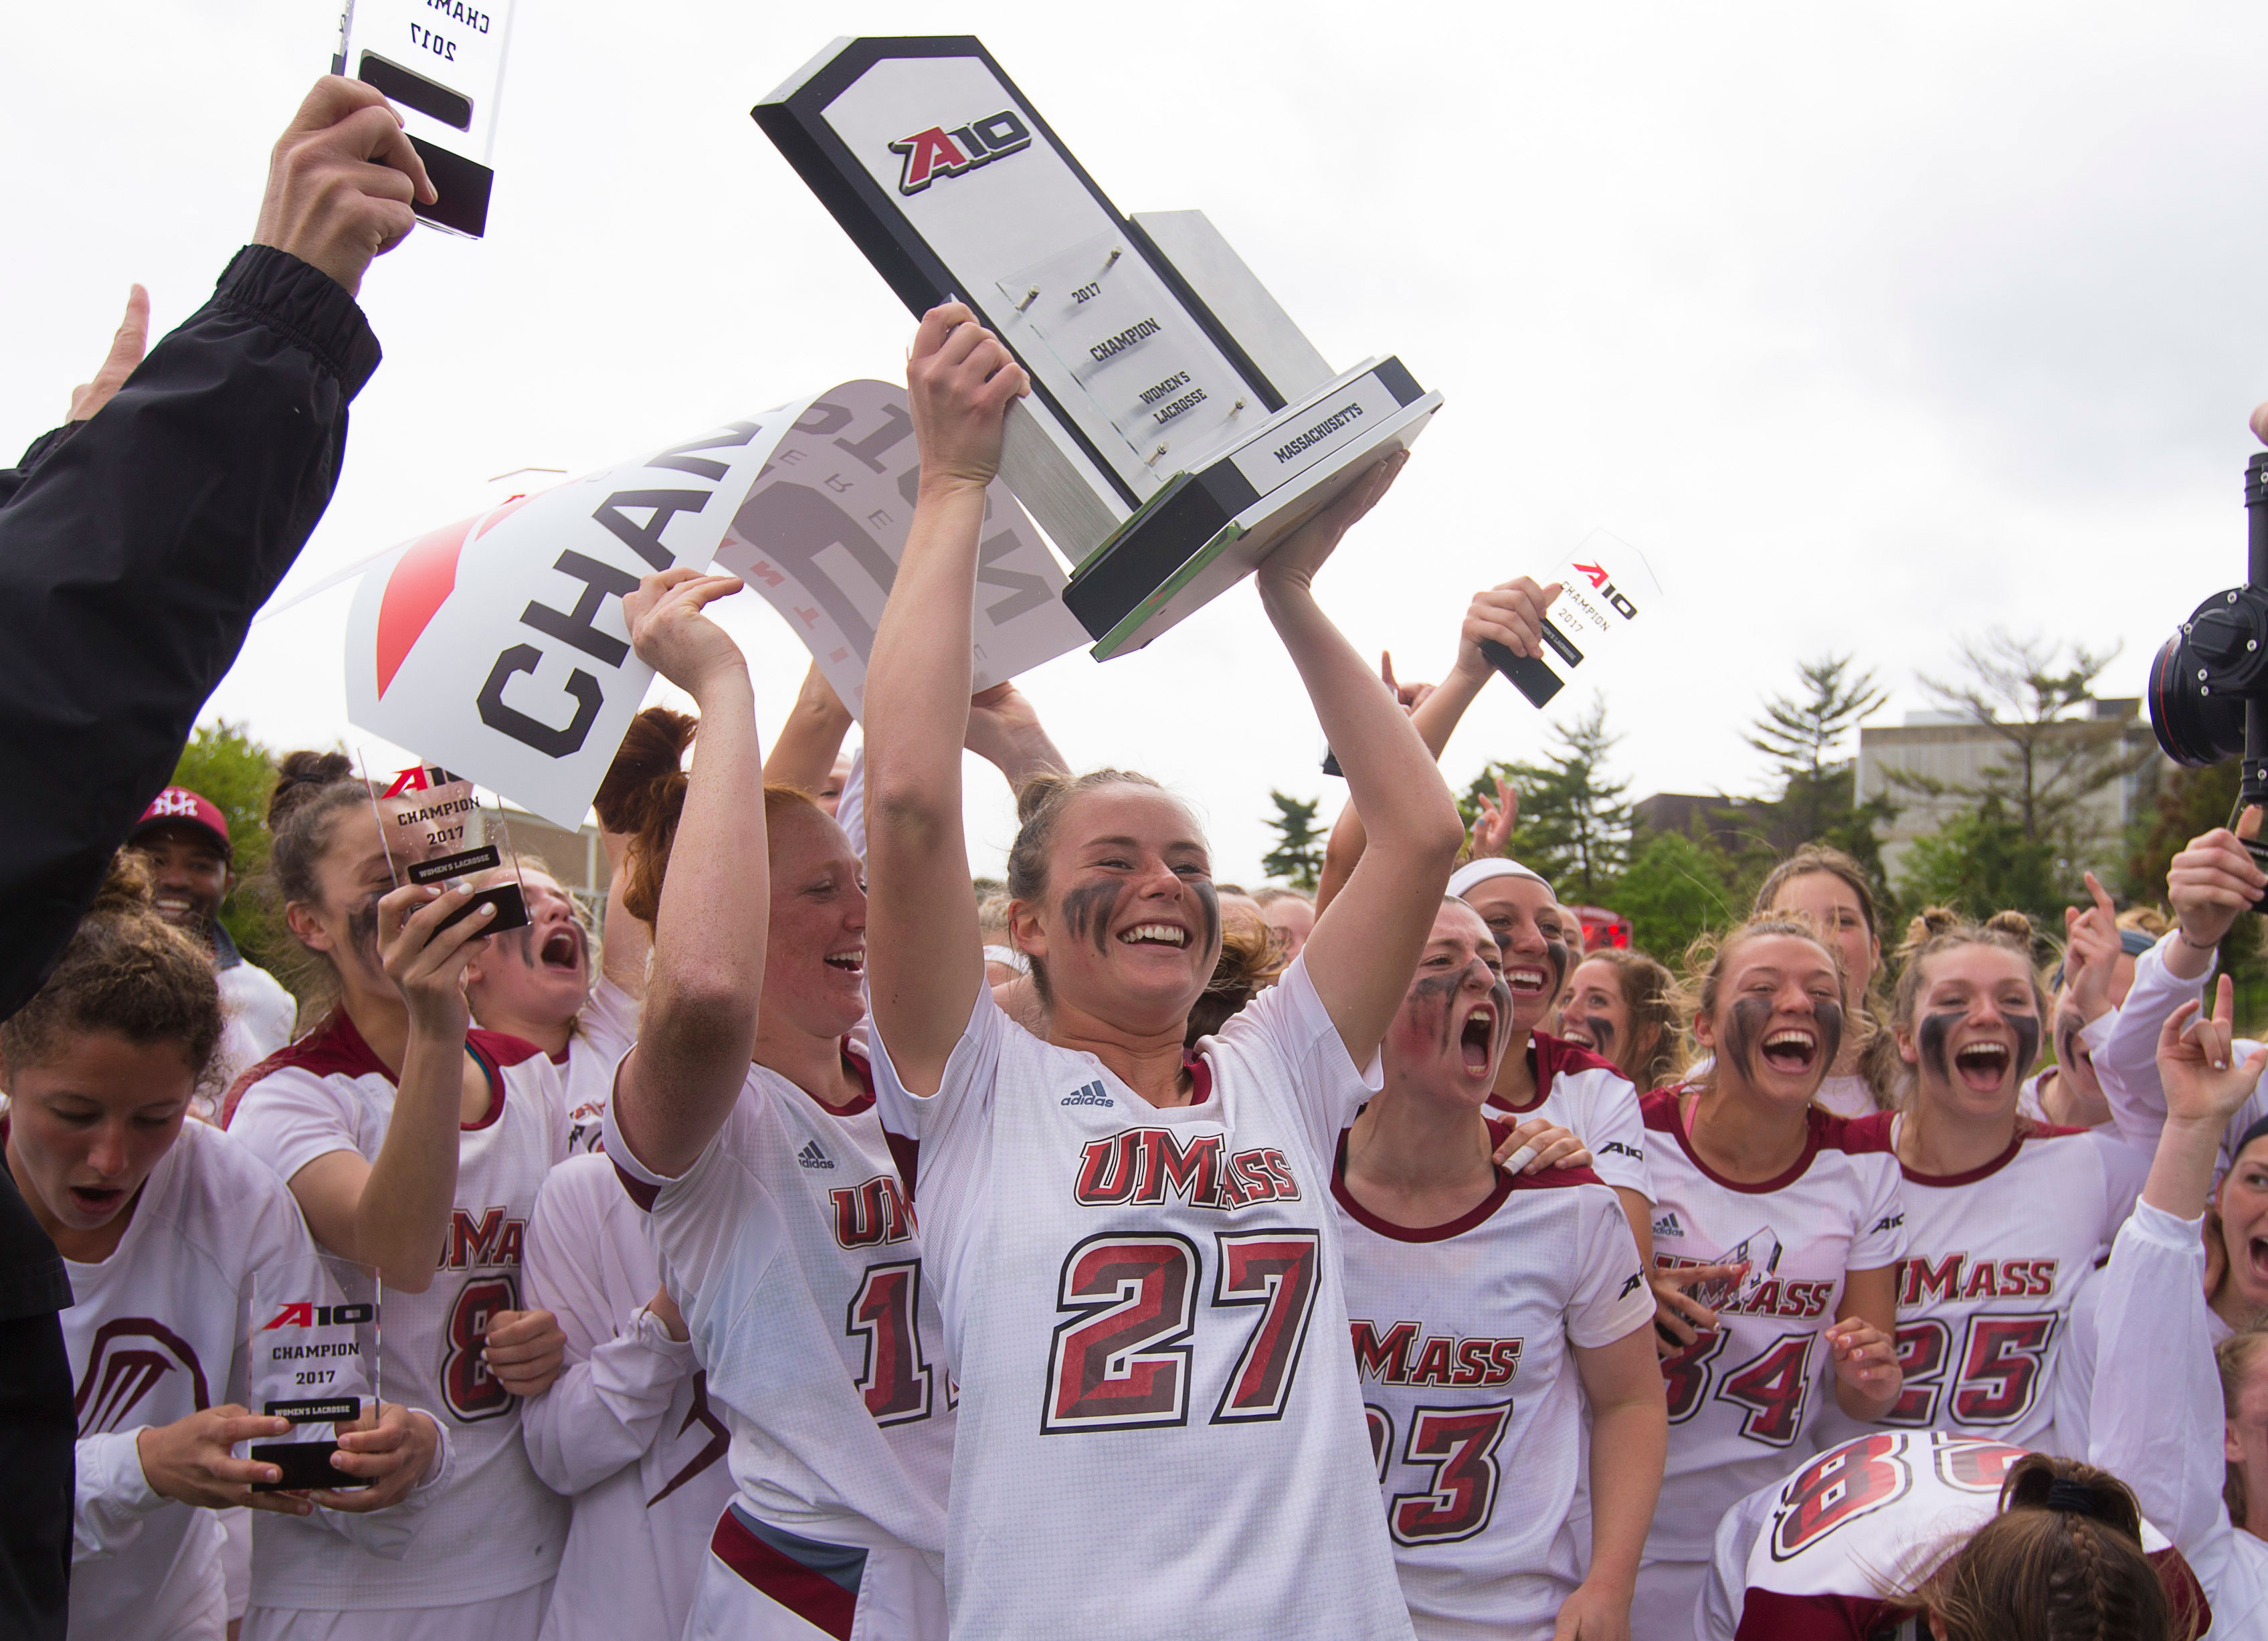 The UMass women's lacrosse team celebrates after their Atlantic 10 championship win.